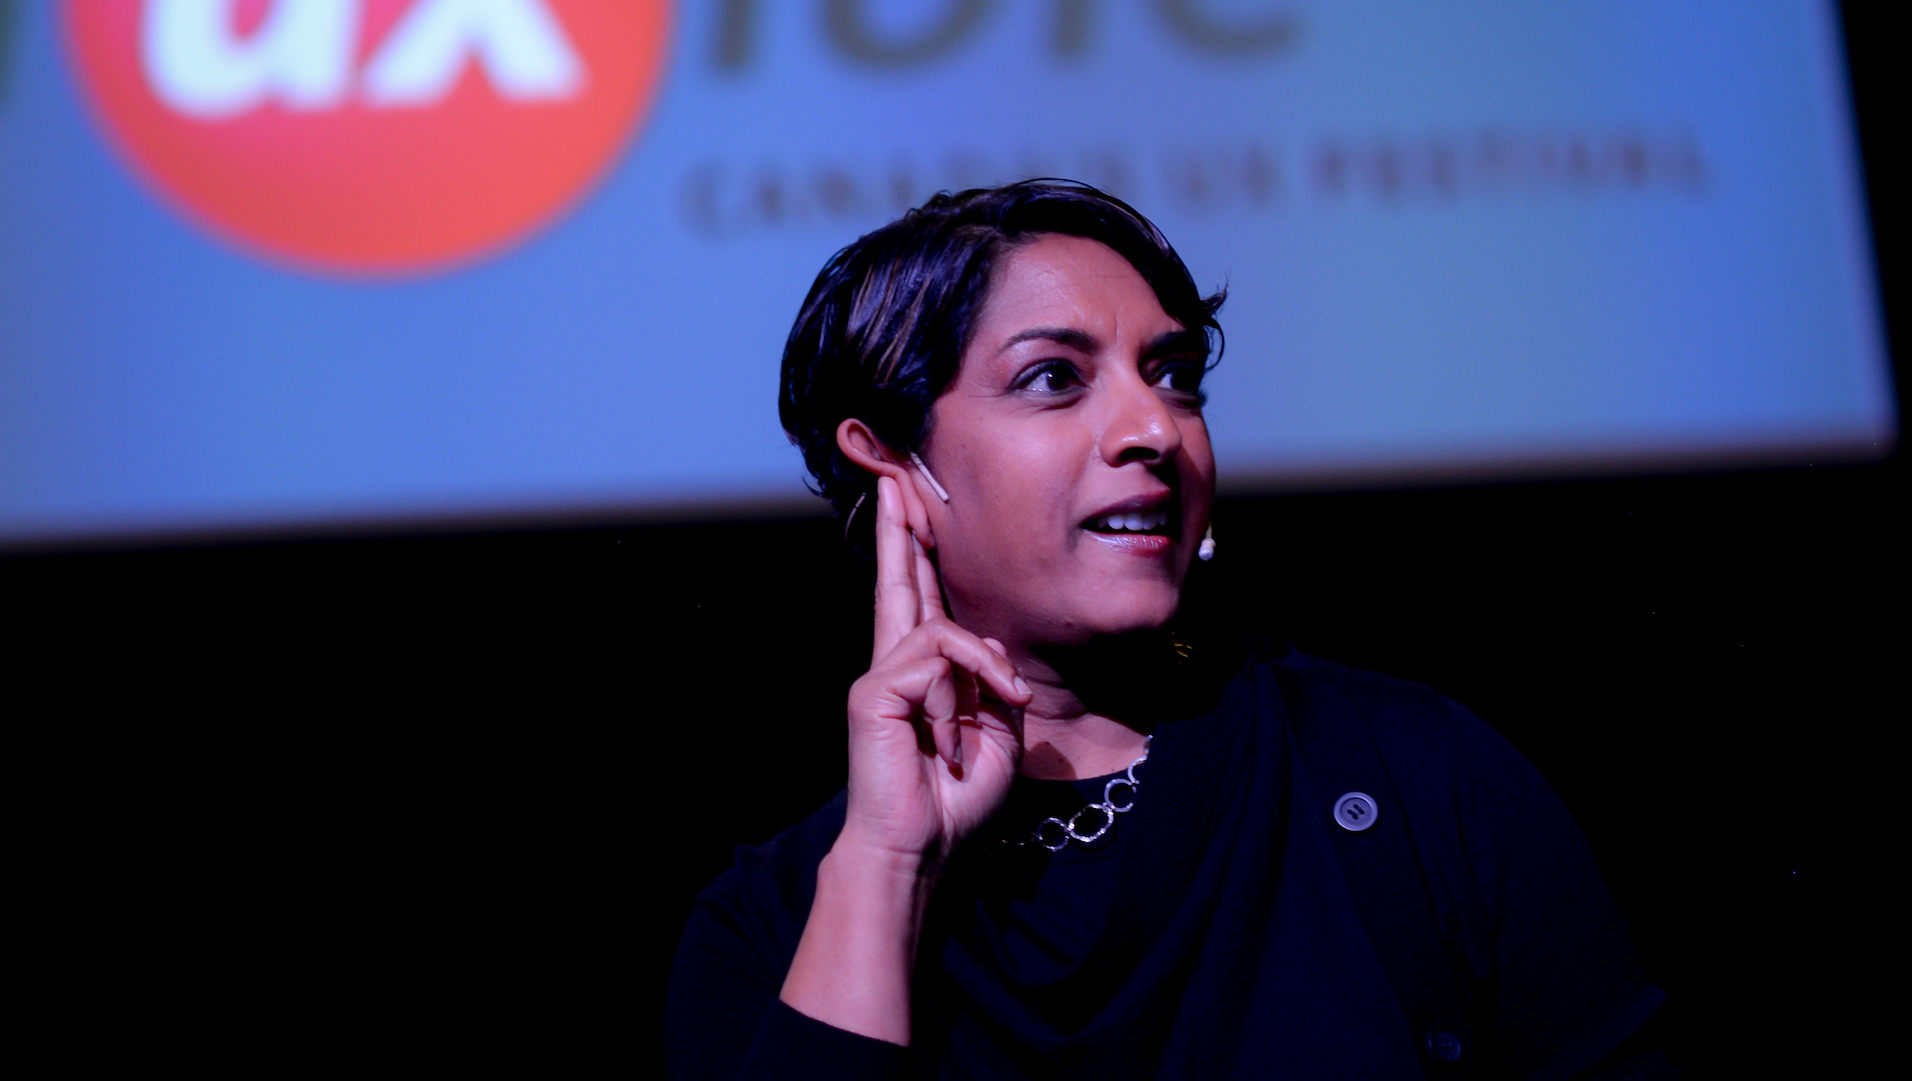 Meena Kothandaraman points up while standing on a stage during Fluxible 2019.